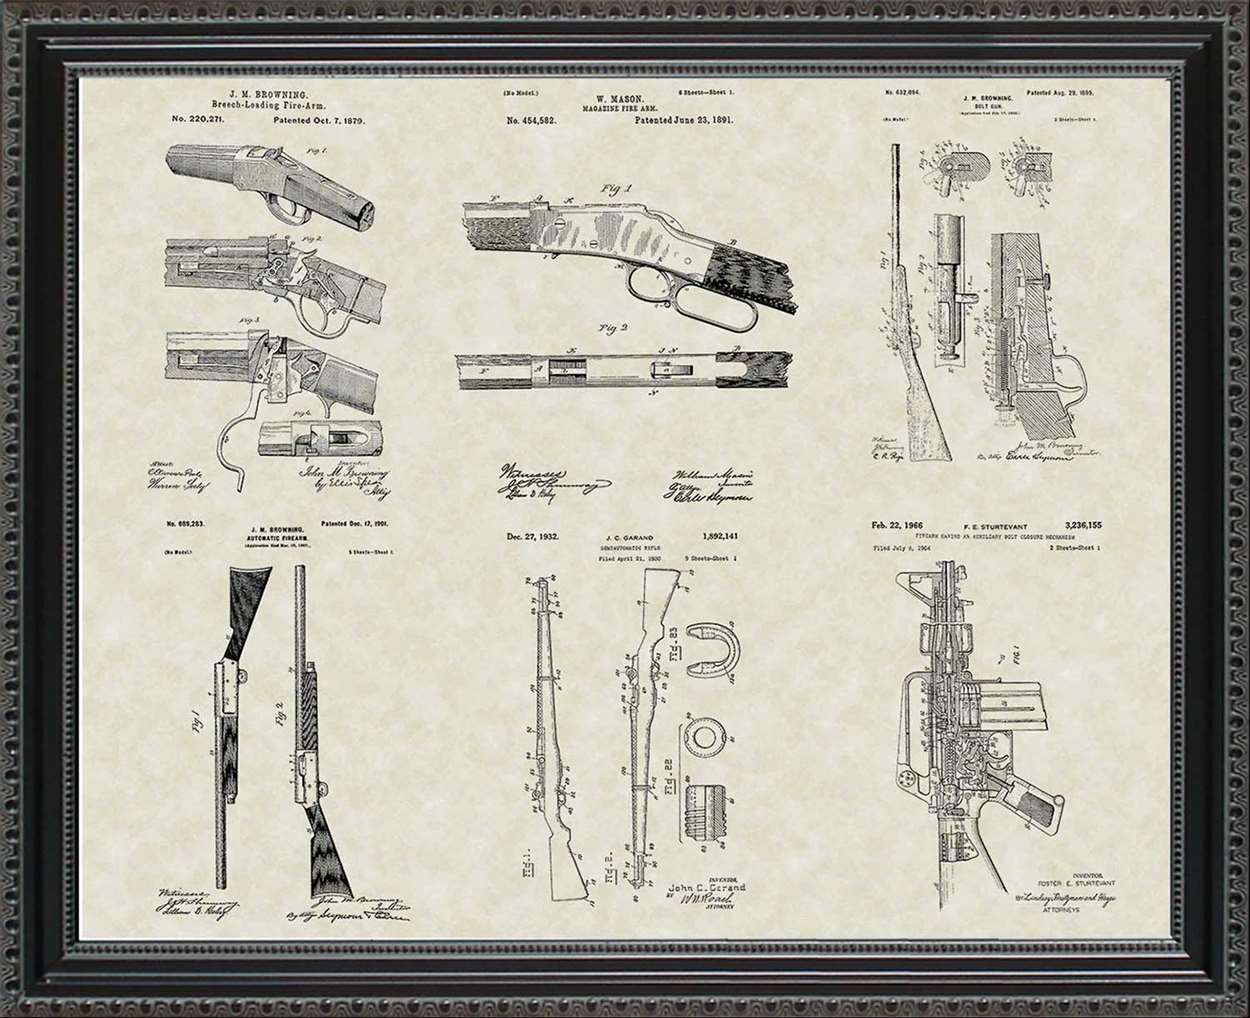 Rifles & Shotgun Patents, 20x24